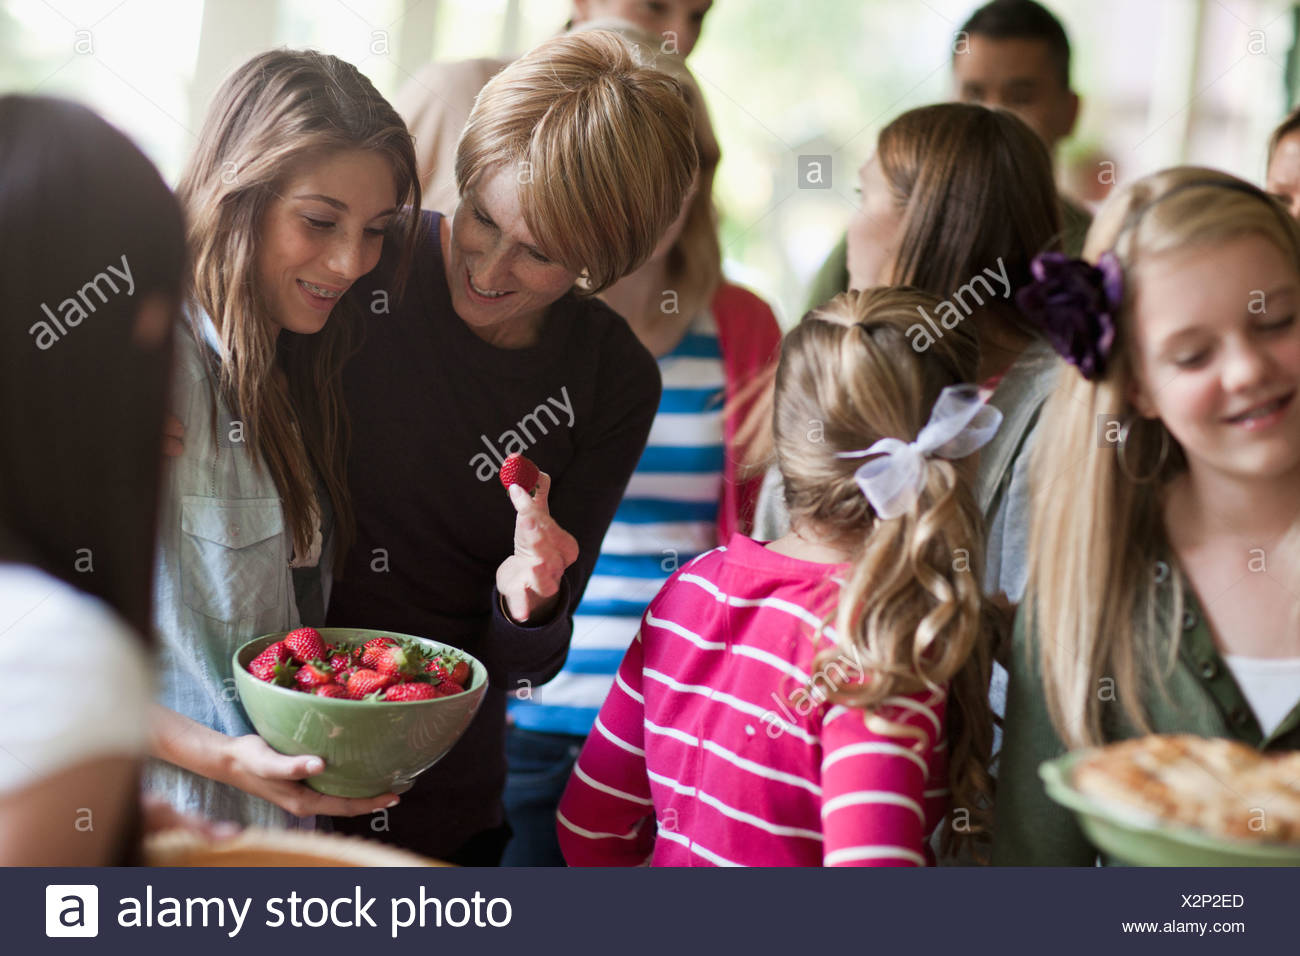 Girls (10-11, 14-15) with family during celebration event - Stock Image